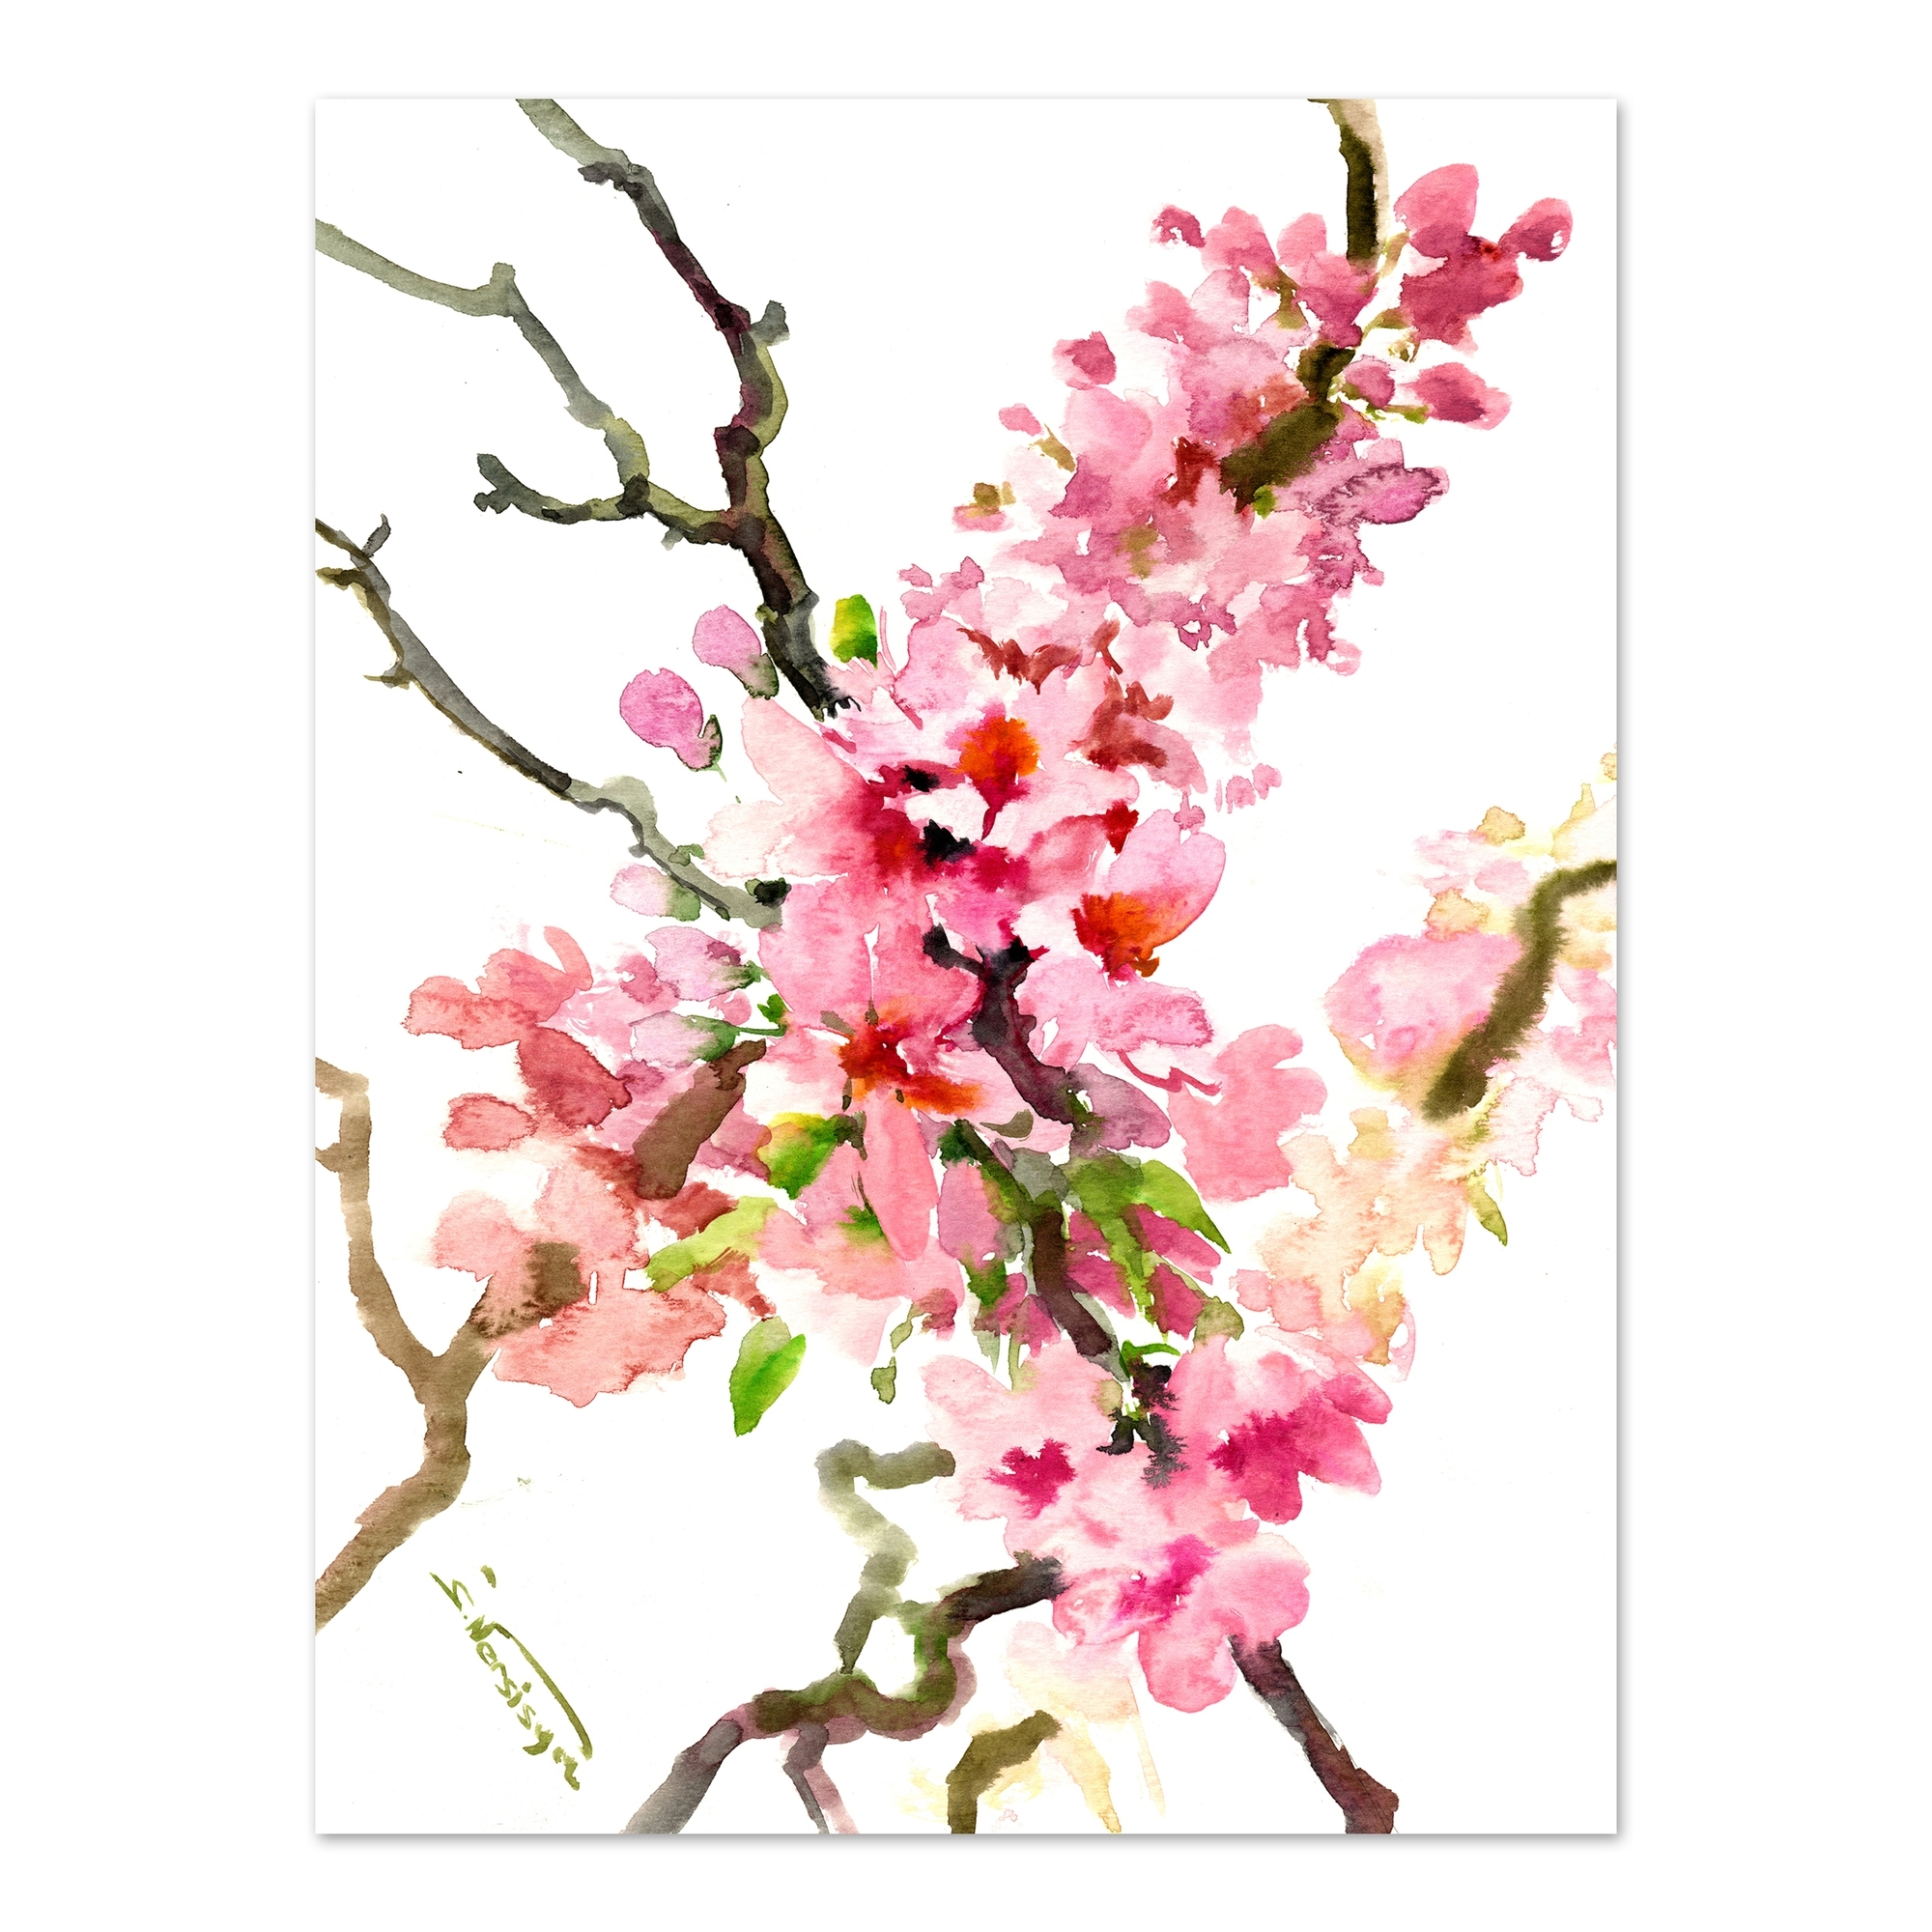 Sakura Cherry Blossom 2 Printed Wall Art | Temple & Webster Throughout Most Current Cherry Blossom Wall Art (View 18 of 20)